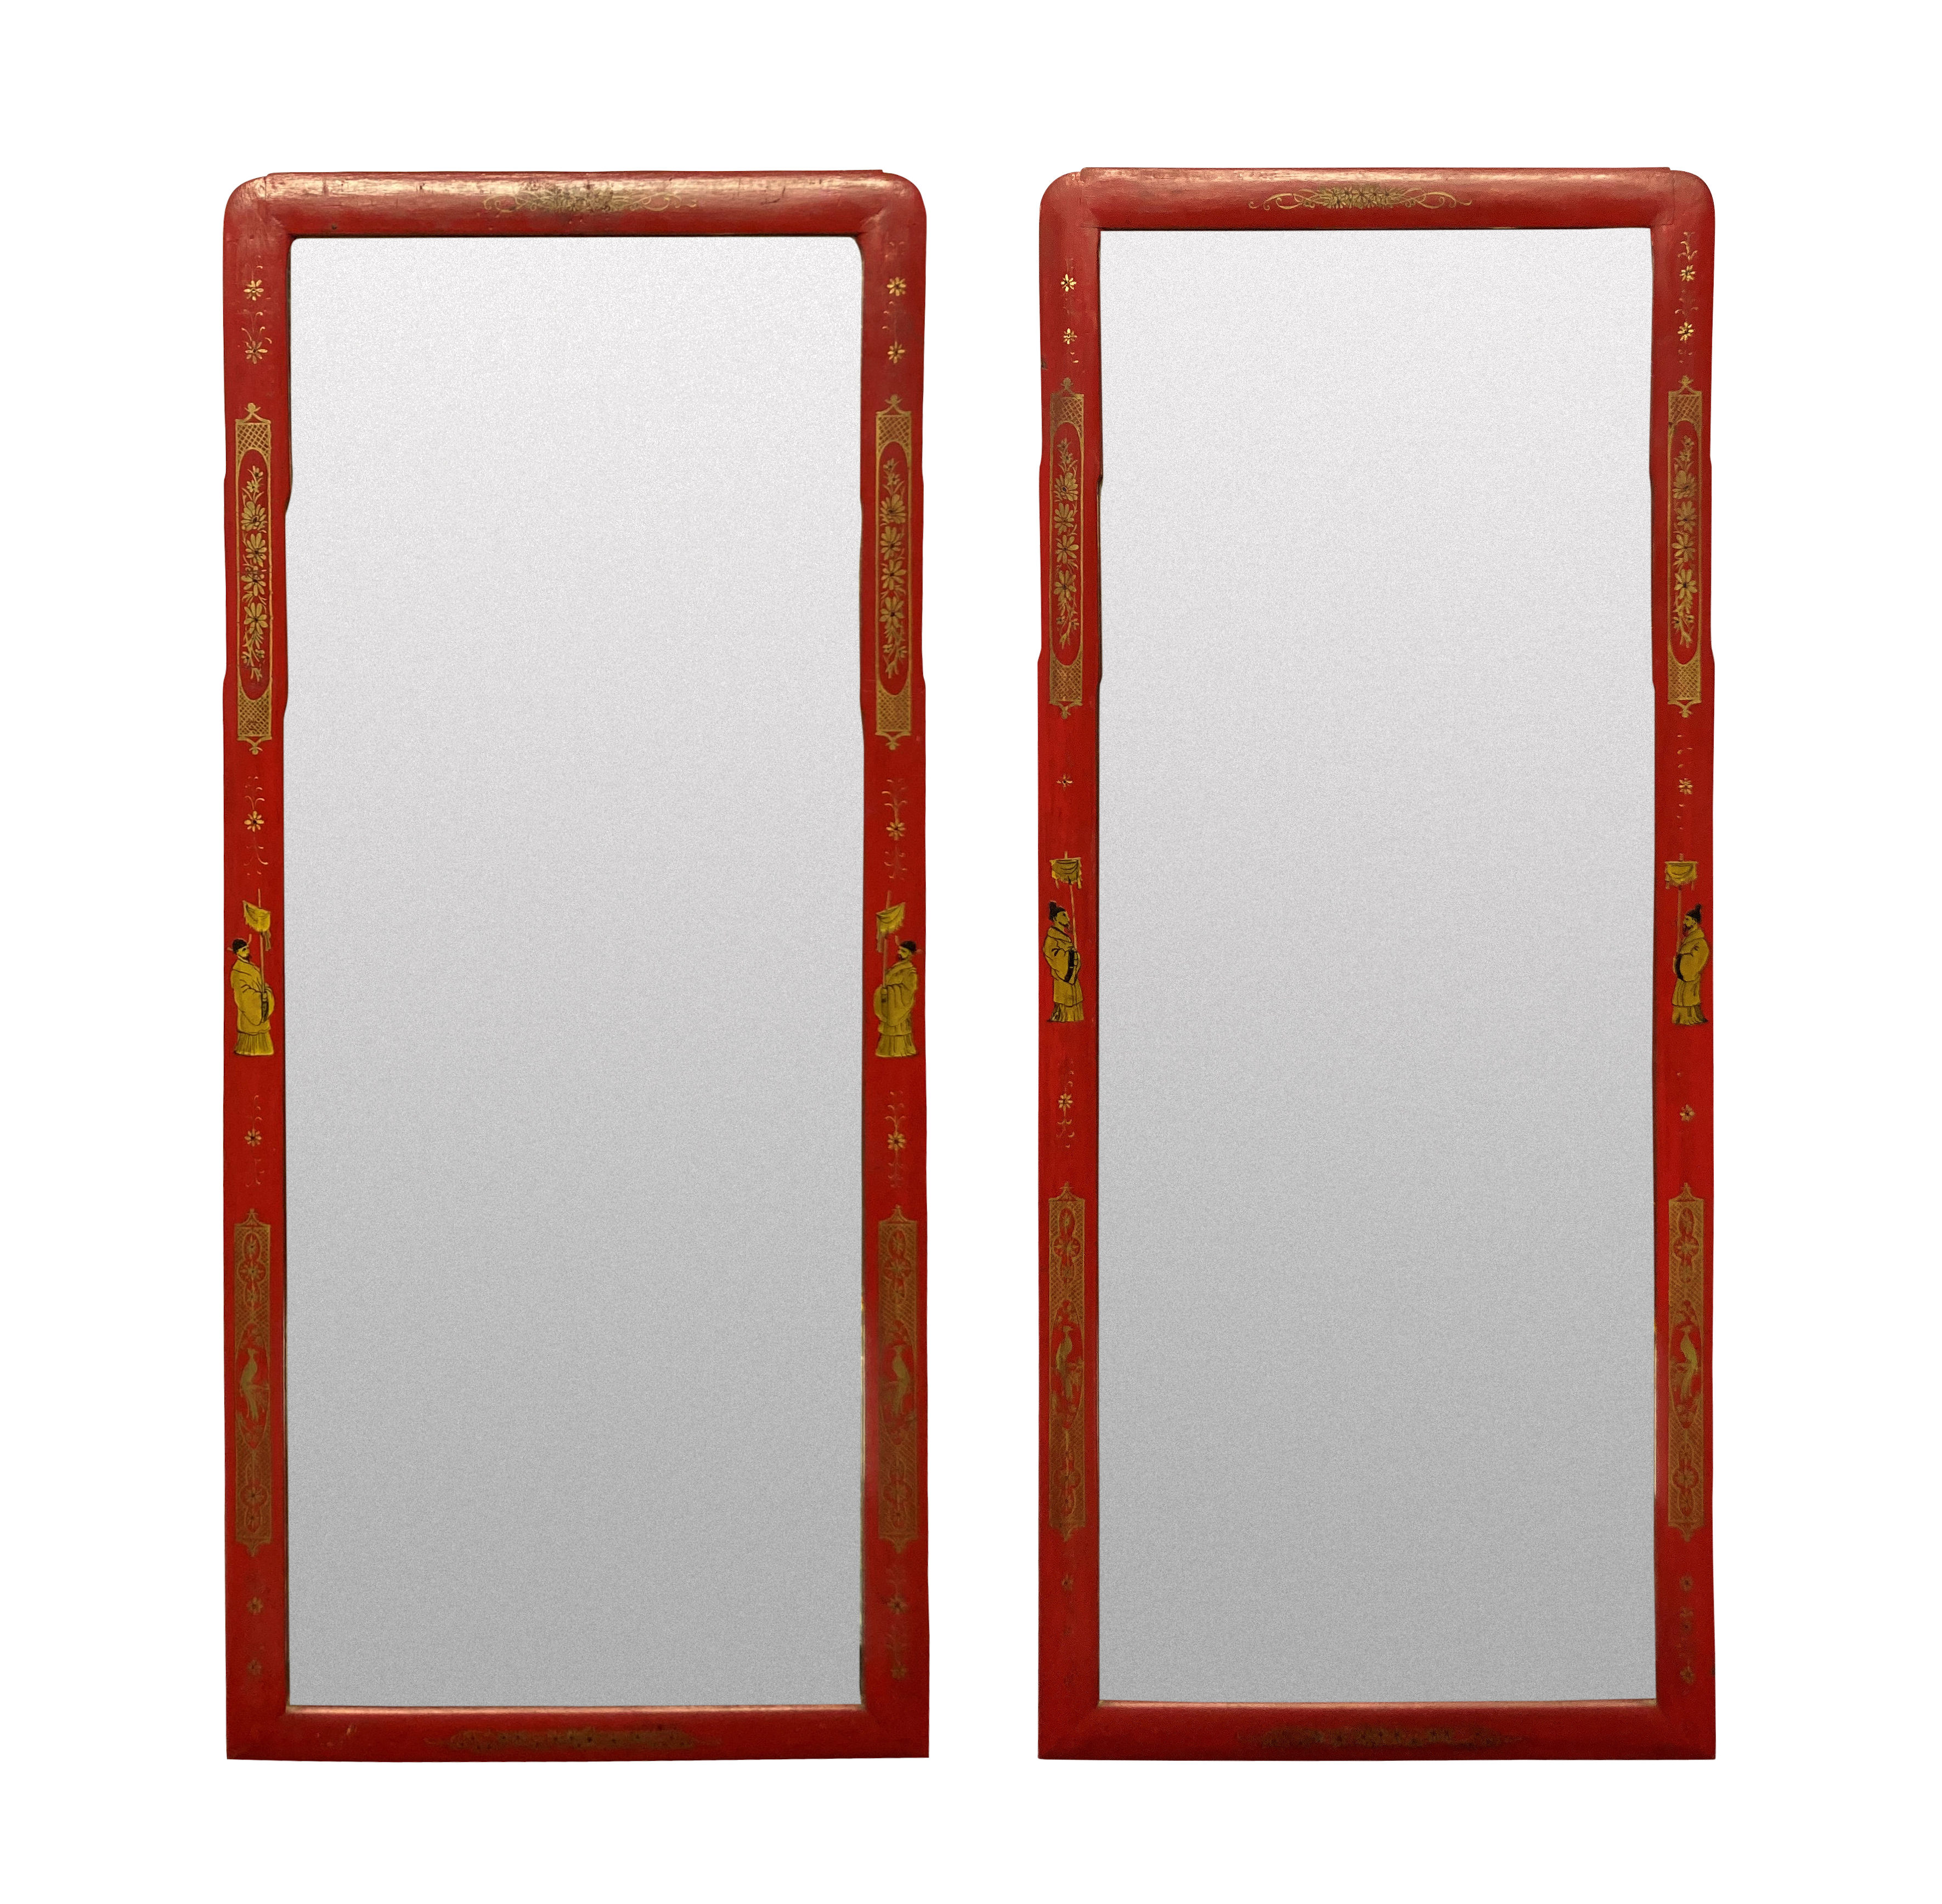 A PAIR OF SCARLET JAPANNED QUEEN ANNE STYLE MIRRORS